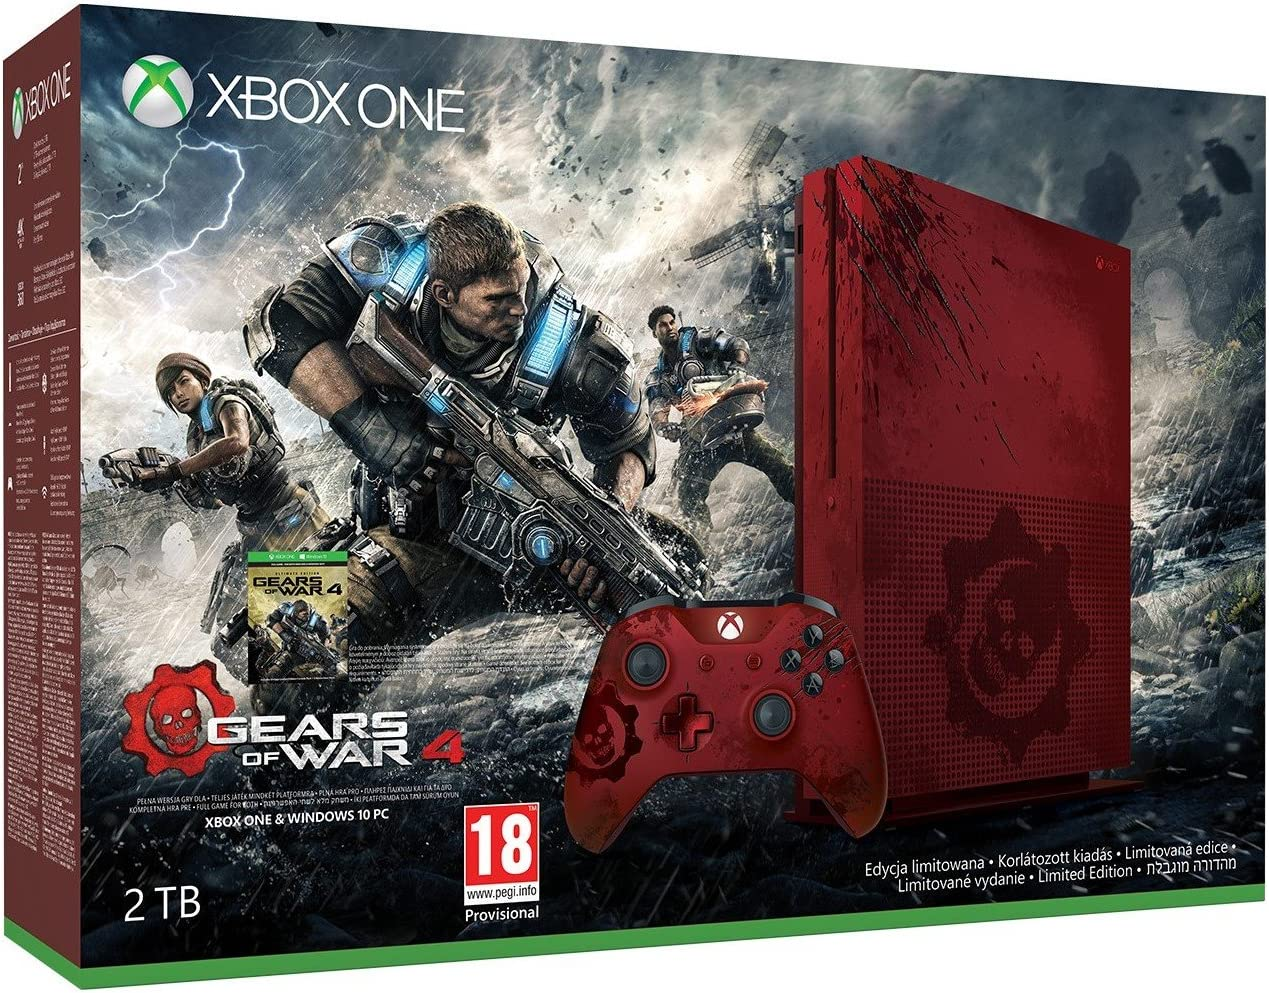 Xbox One S 2 TB Console - Gears Of War 4 Limited Edition Bundle ...